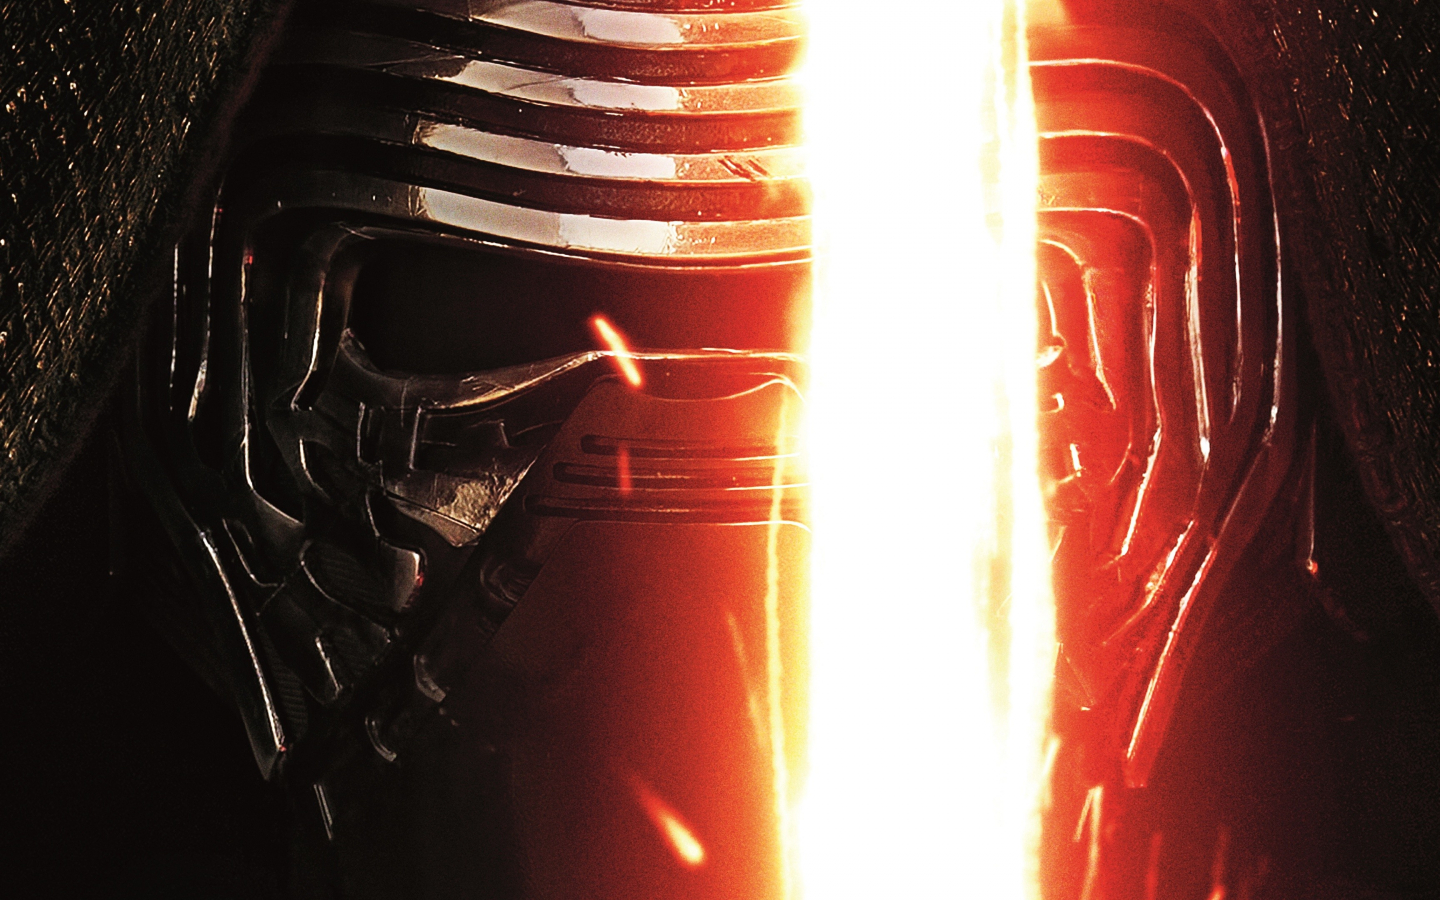 Free Download Wars Kylo Ren Star Wars Episode Vii The Force Awakens Wallpaper Hd 3840x2160 For Your Desktop Mobile Tablet Explore 48 Kylo Ren Wallpaper 1920x1080 Kylo Ren Wallpapers